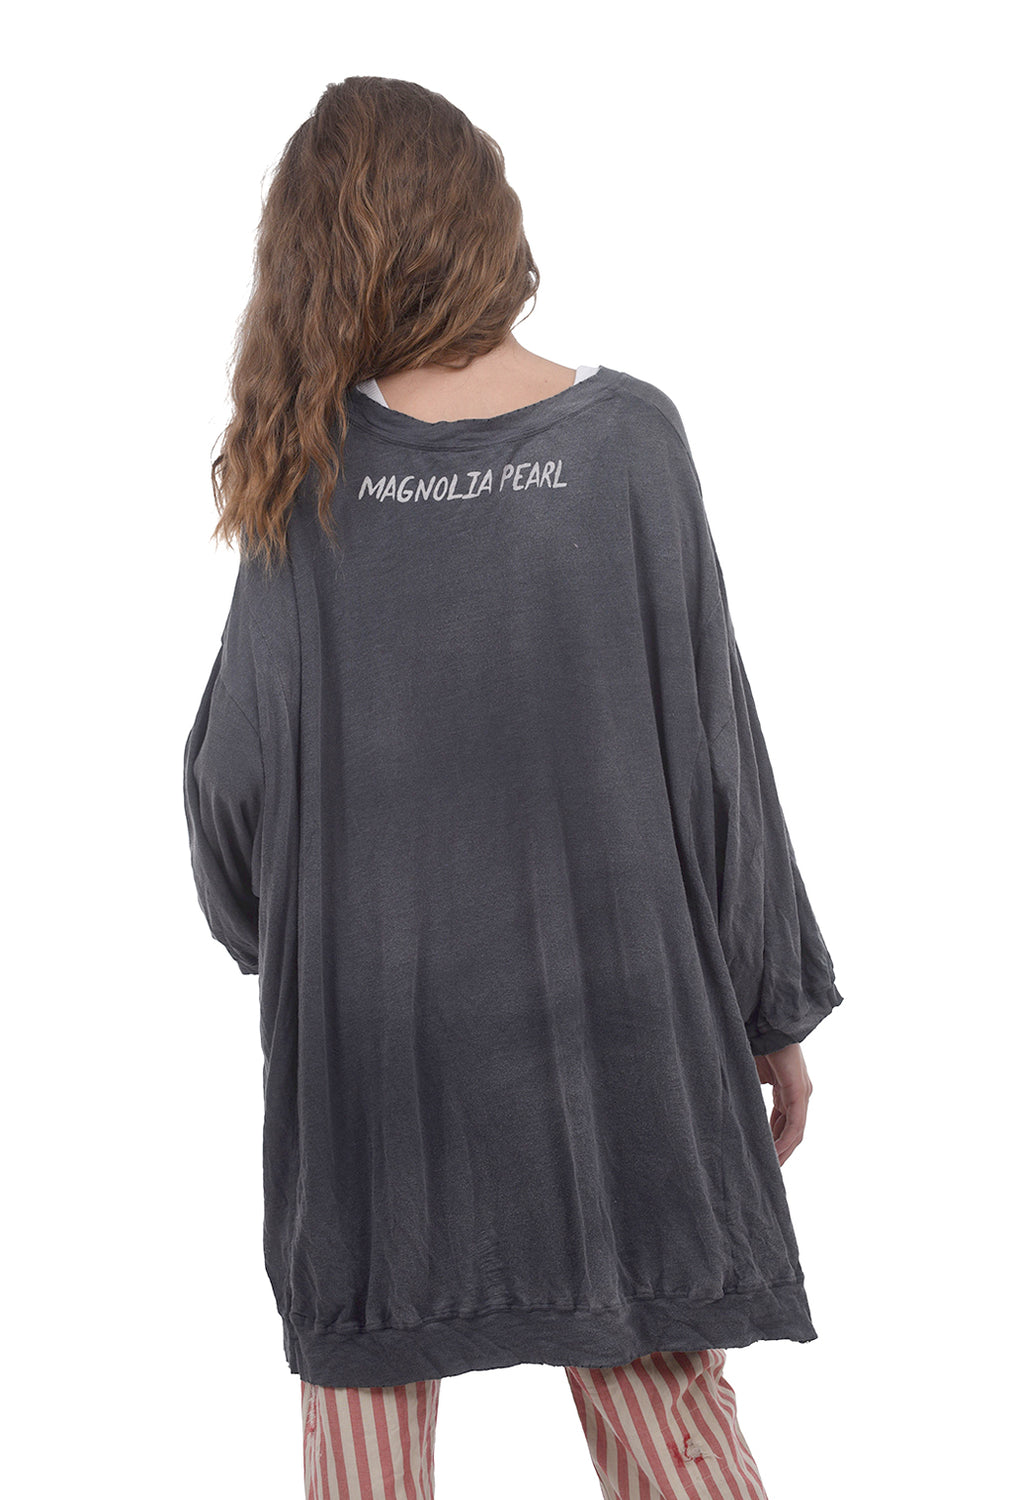 Magnolia Pearl CJ High-Low Francis Pullover, Ozzy Disco One Size Gray